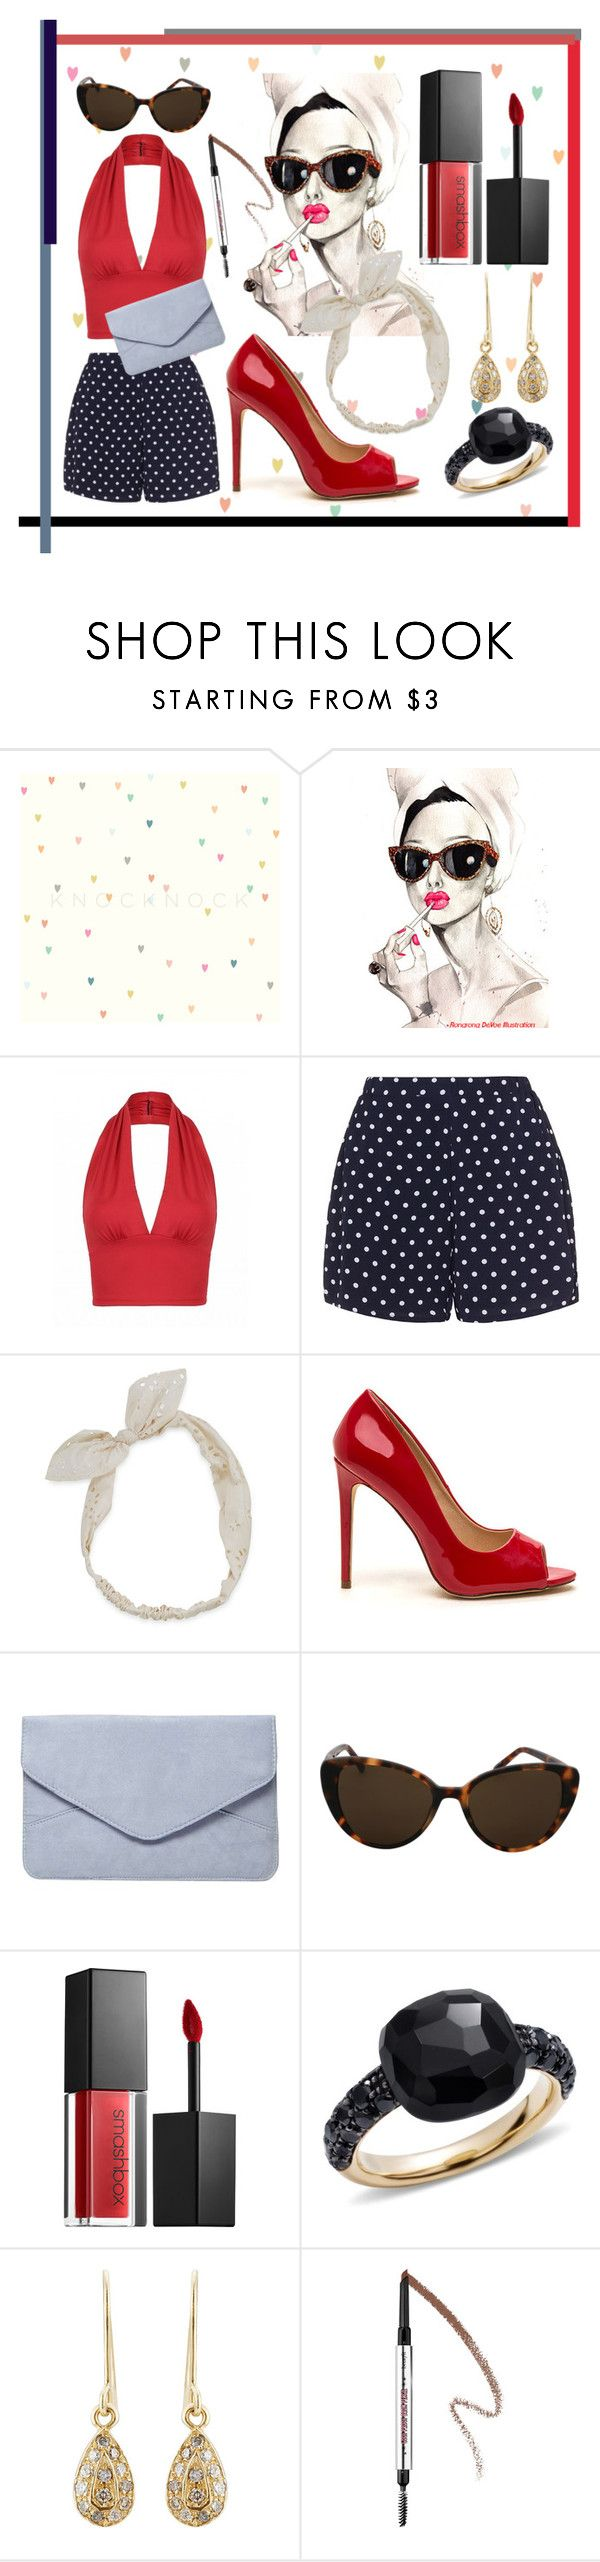 """Retro-girl"" by karimaputri on Polyvore featuring Zizzi, Carole, Dorothy Perkins, Linda Farrow, Smashbox, Pomellato, Carolina Bucci and Benefit"